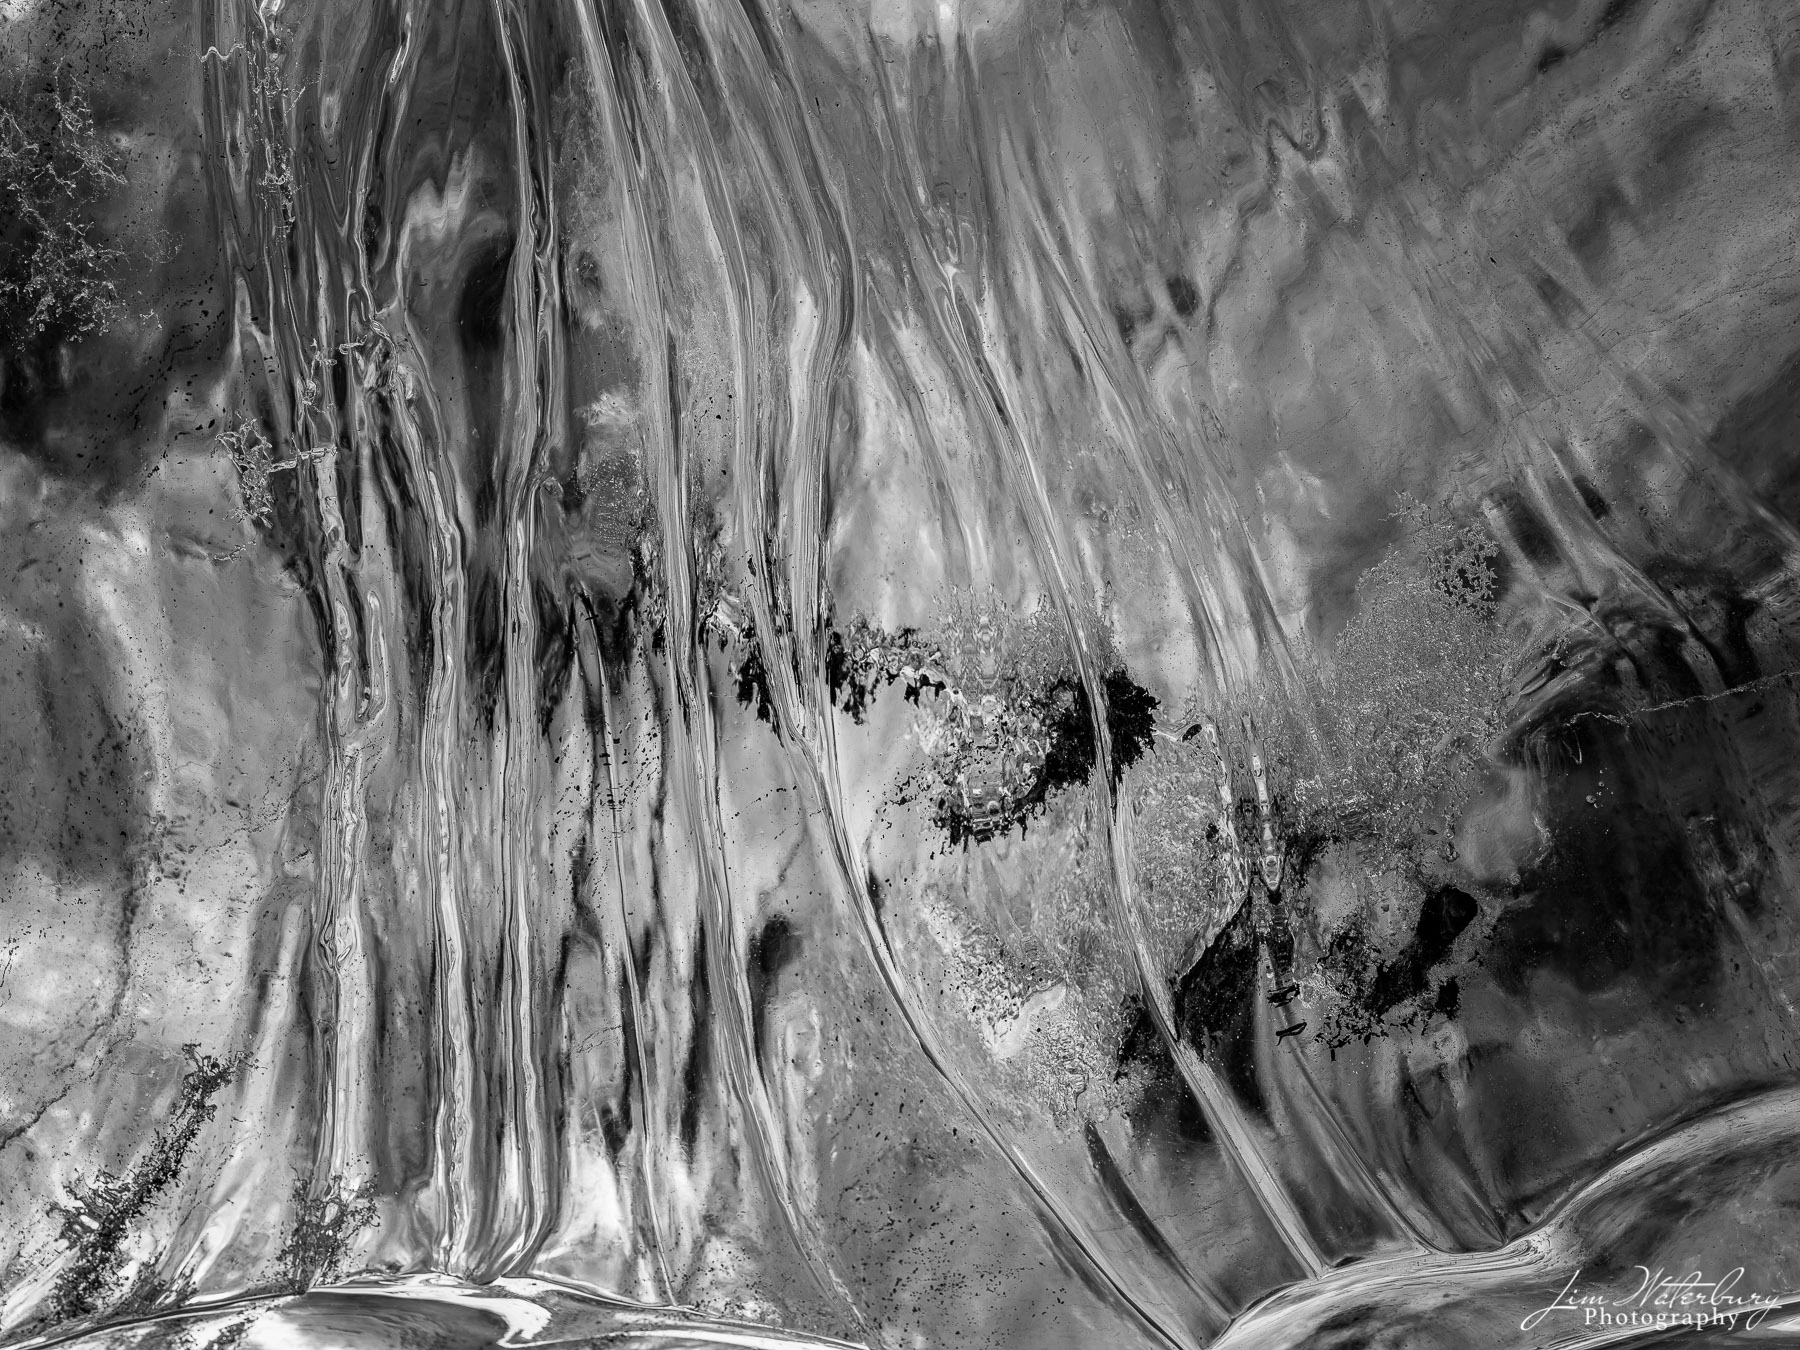 black & white, ice, cave, Breidarmerkurjokull, Vatnajokull, Iceland, photo